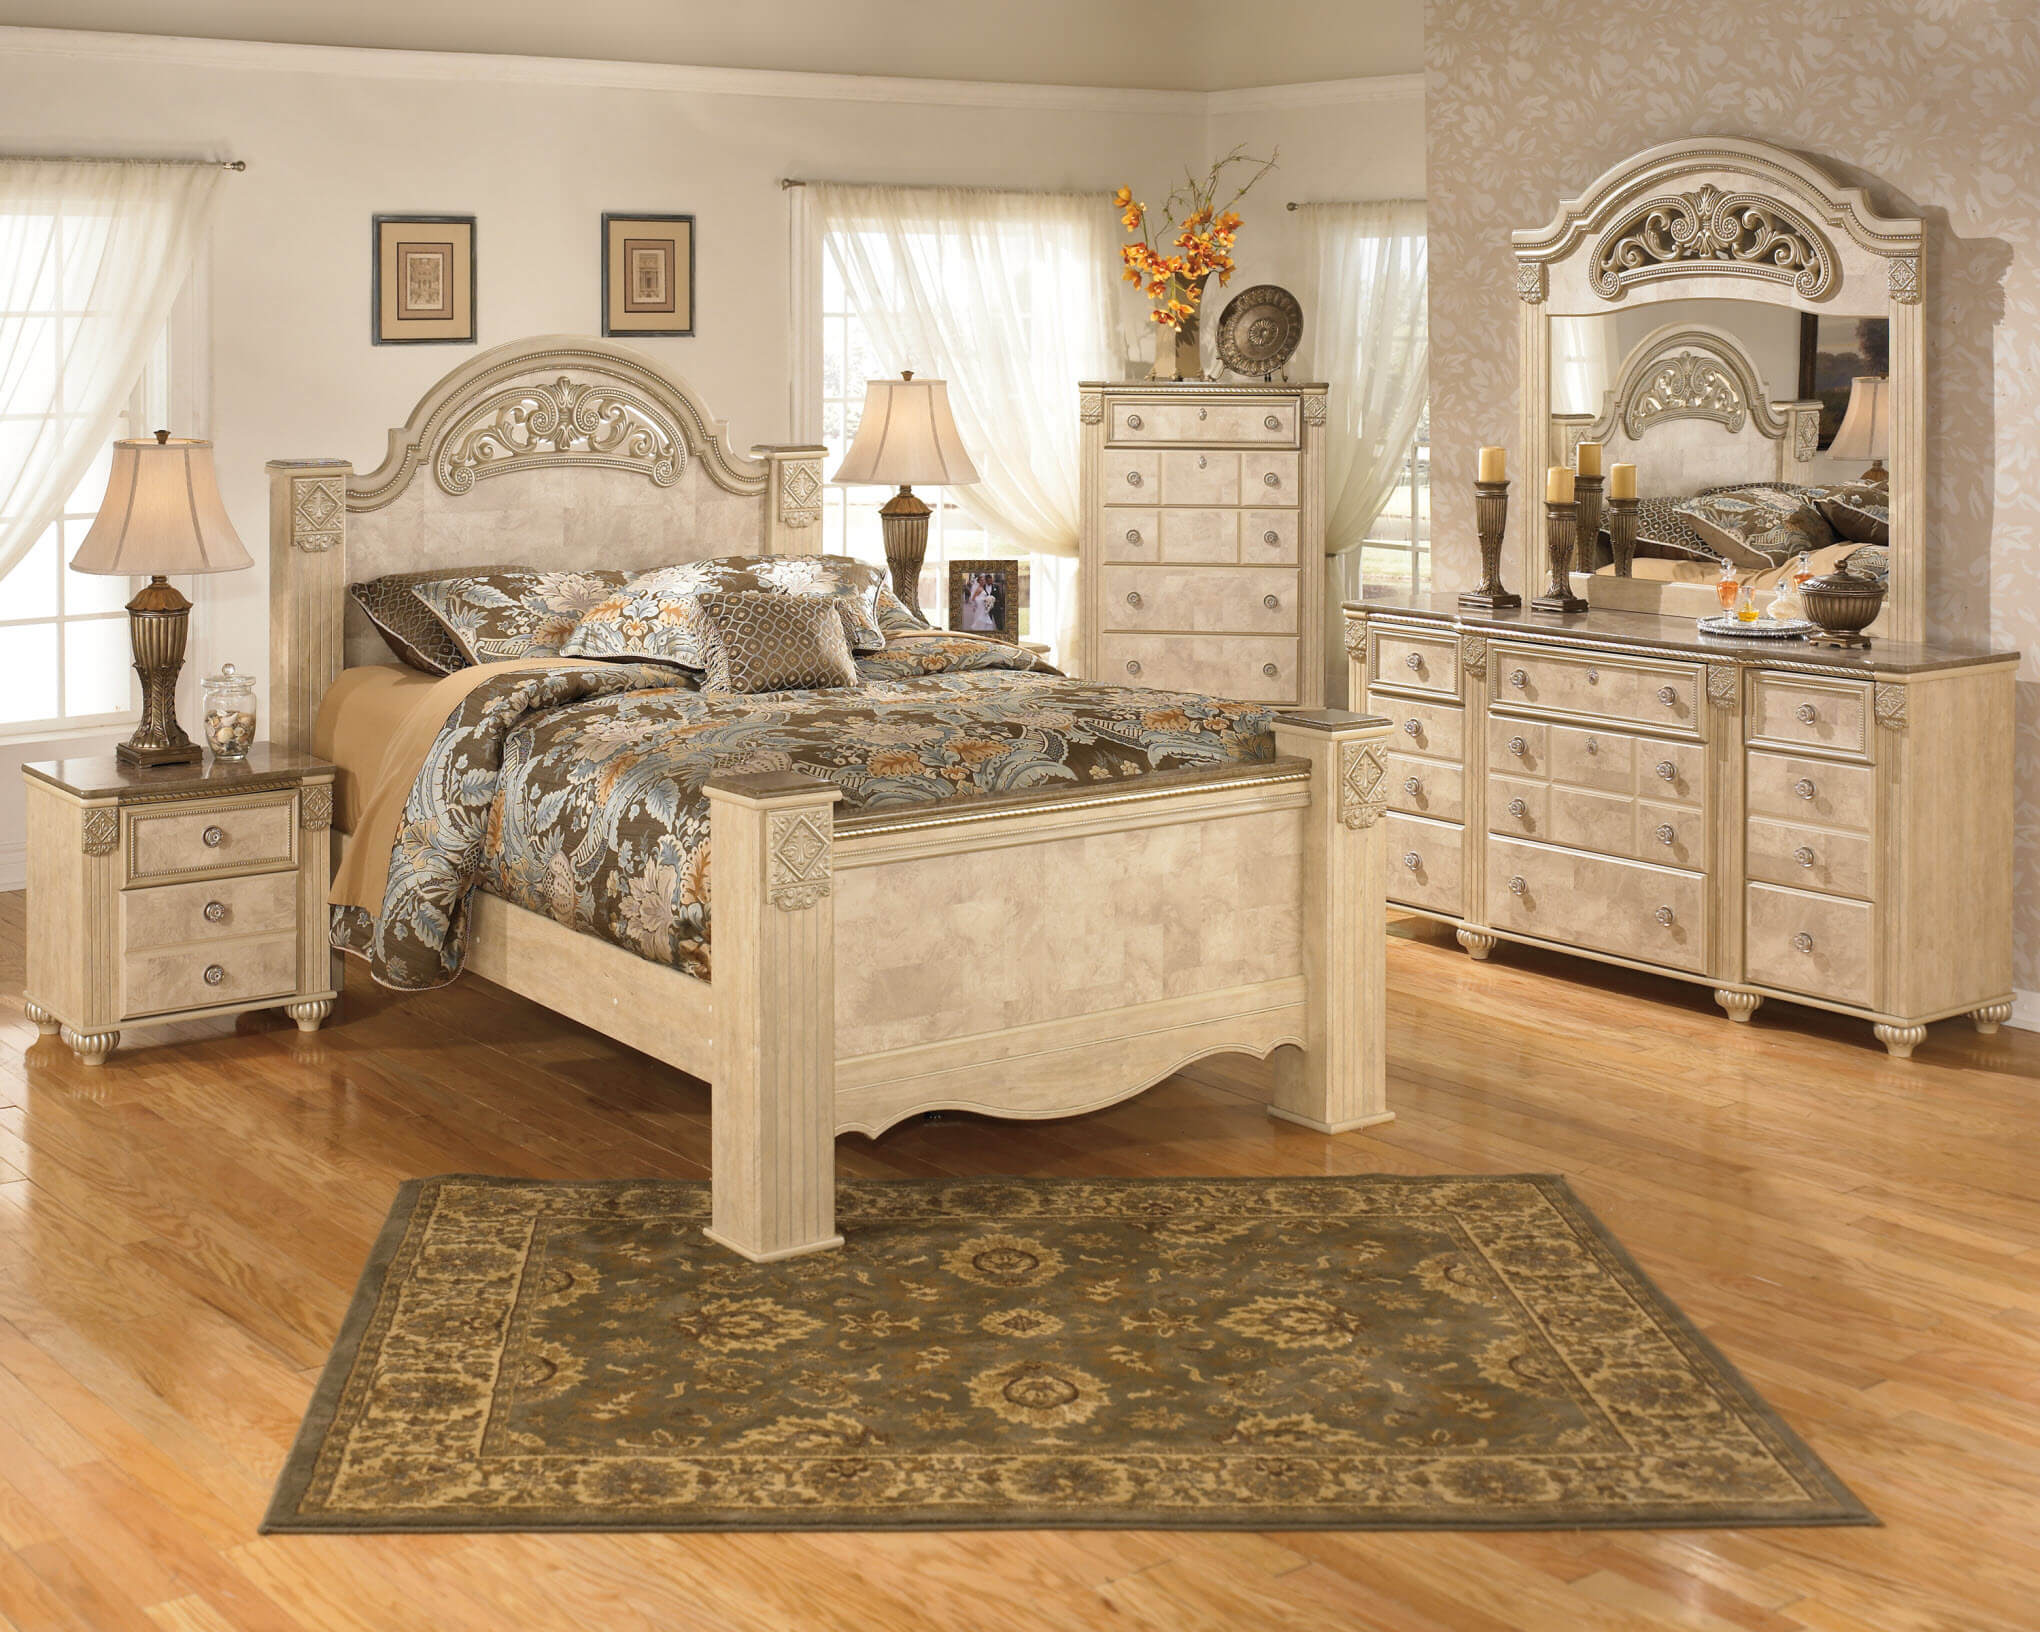 Ashley saveaha old world bedroom set bedroom furniture sets - Ashley furniture bedroom packages ...